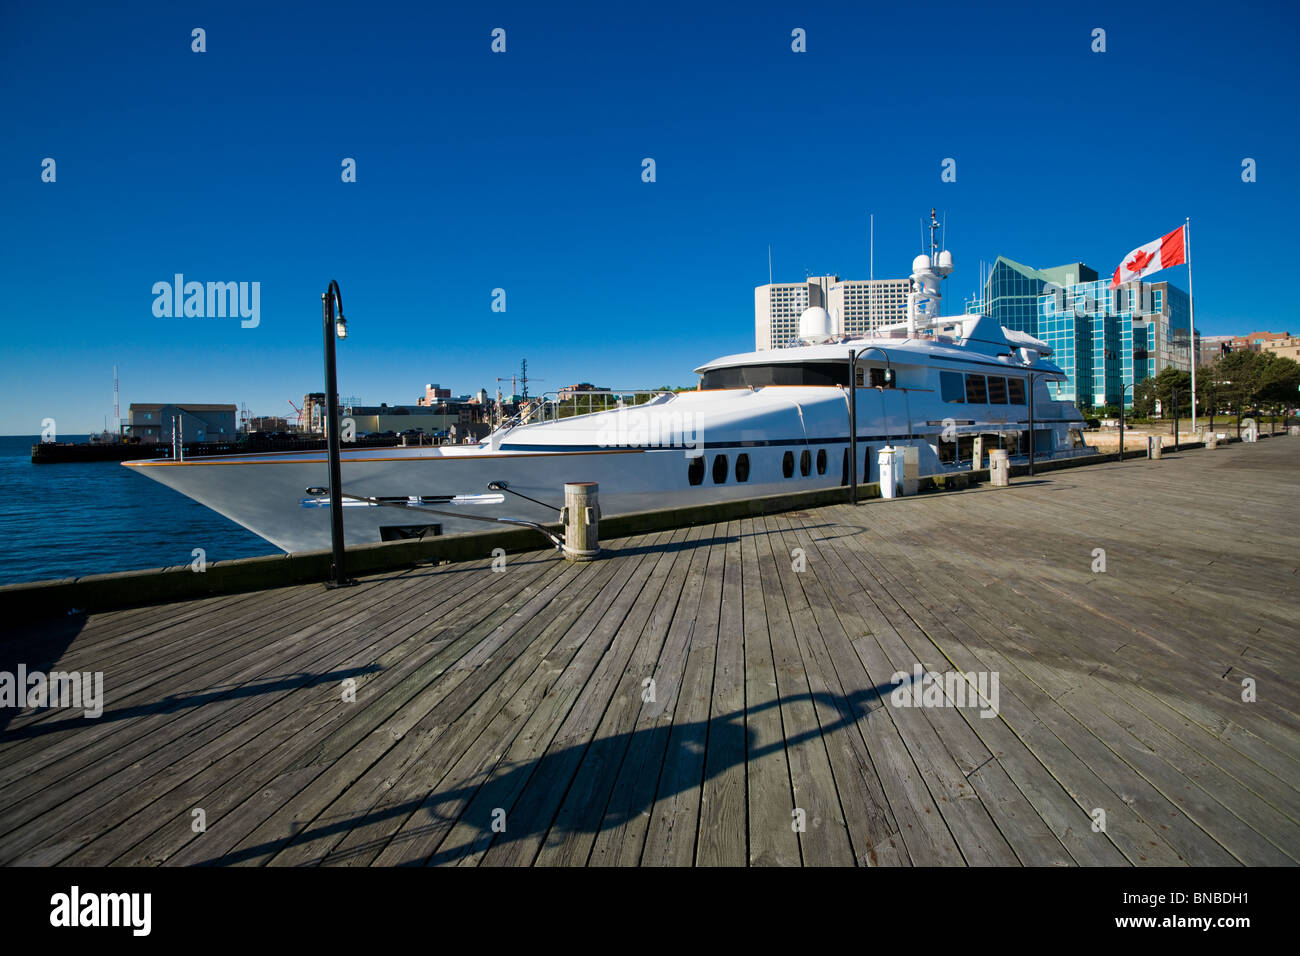 A private yacht is tied up alongside a pier in front of Summit Place in Halifax, Nova Scotia. - Stock Image